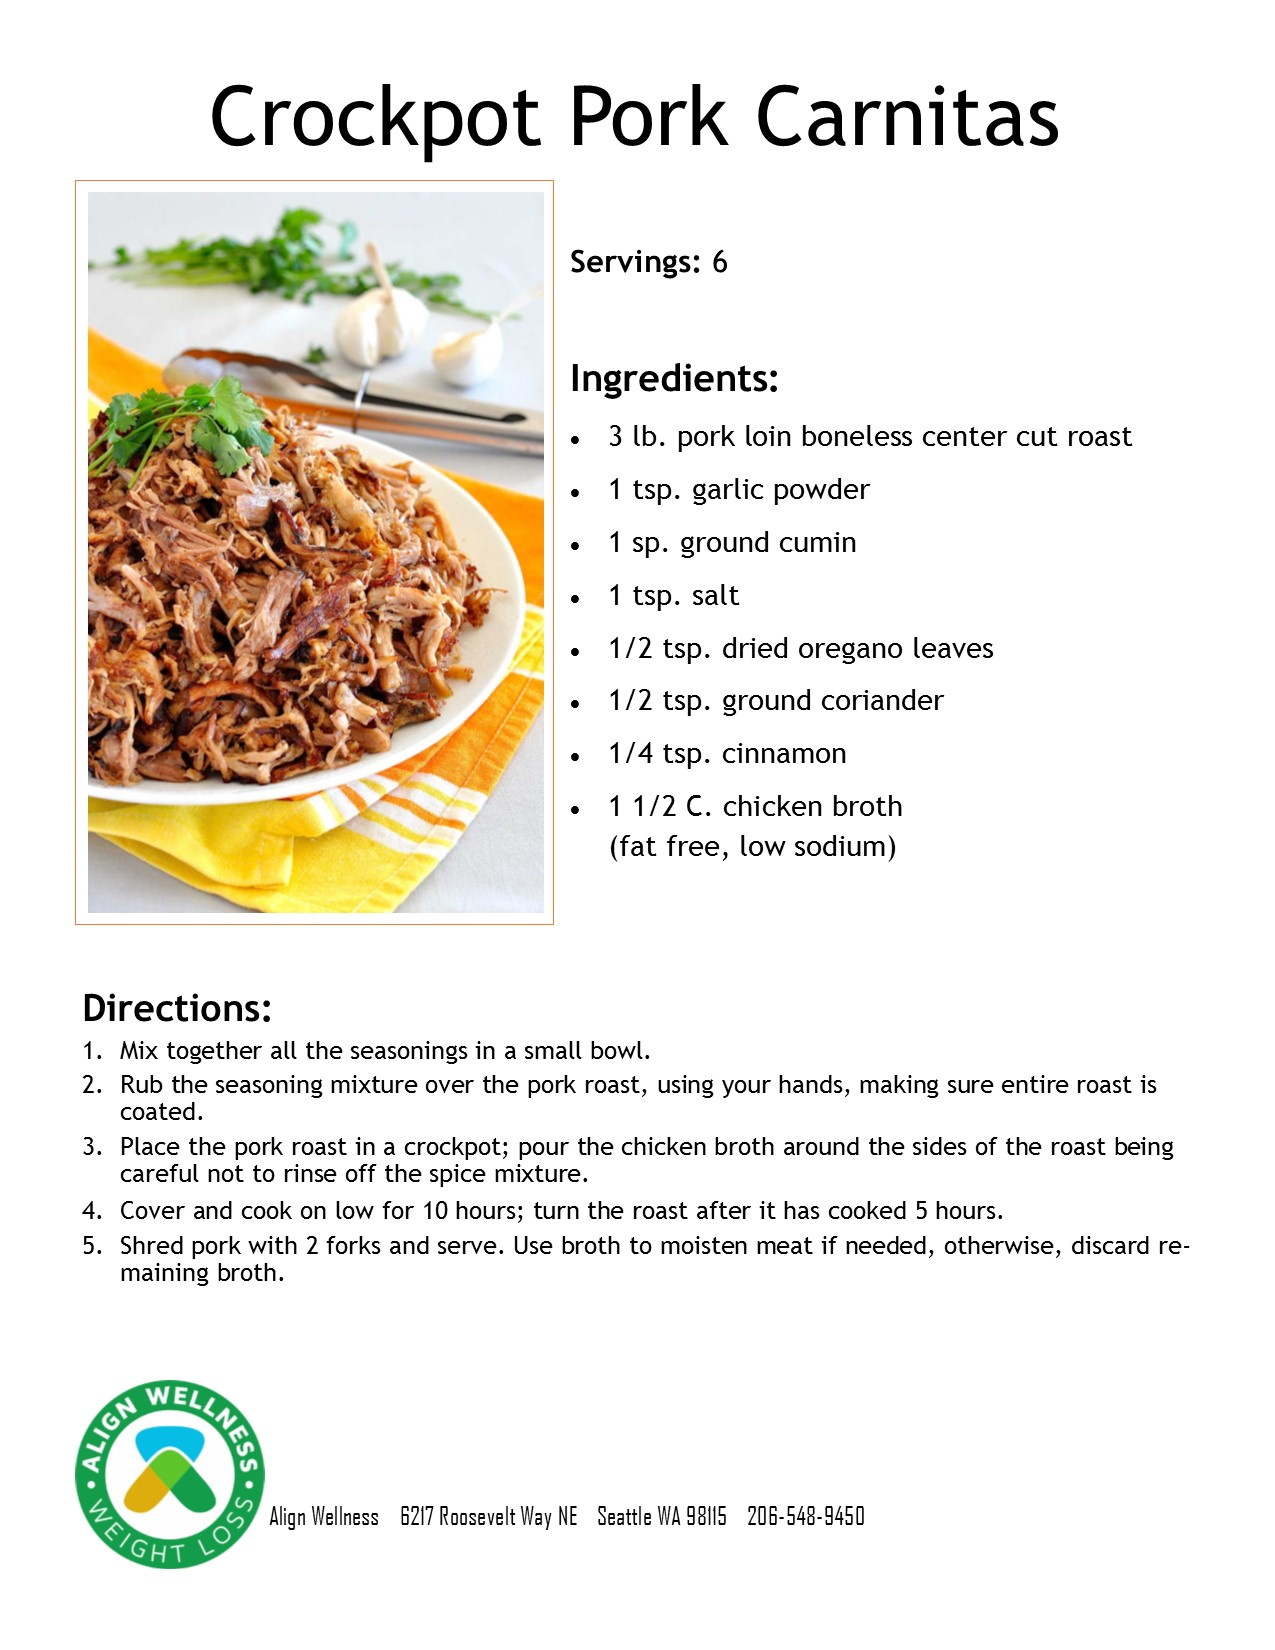 Crockpot Pork Carnitas Ideal Protein Recipe